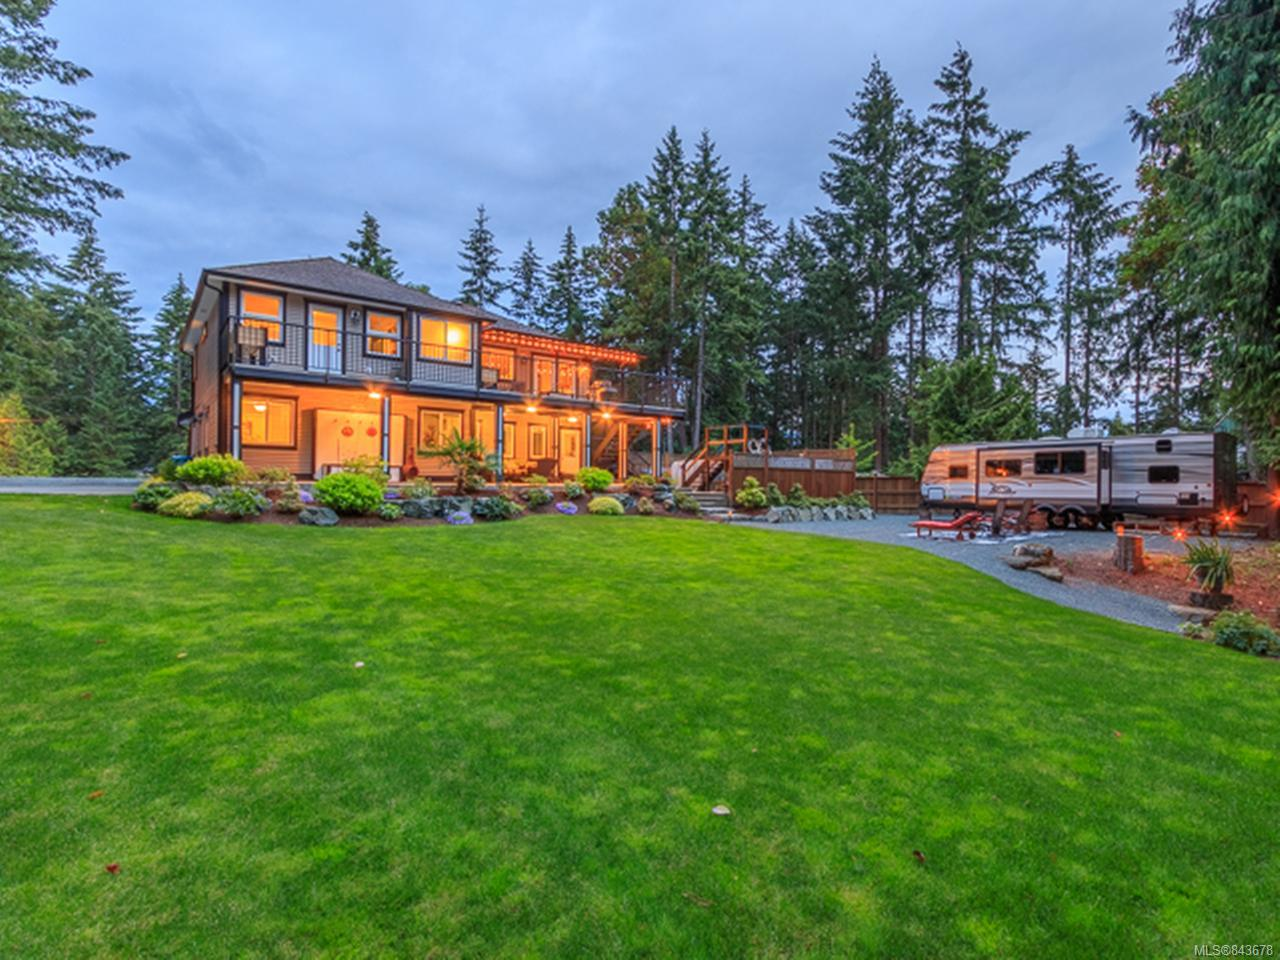 FEATURED LISTING: 75 Lake Pl NANAIMO